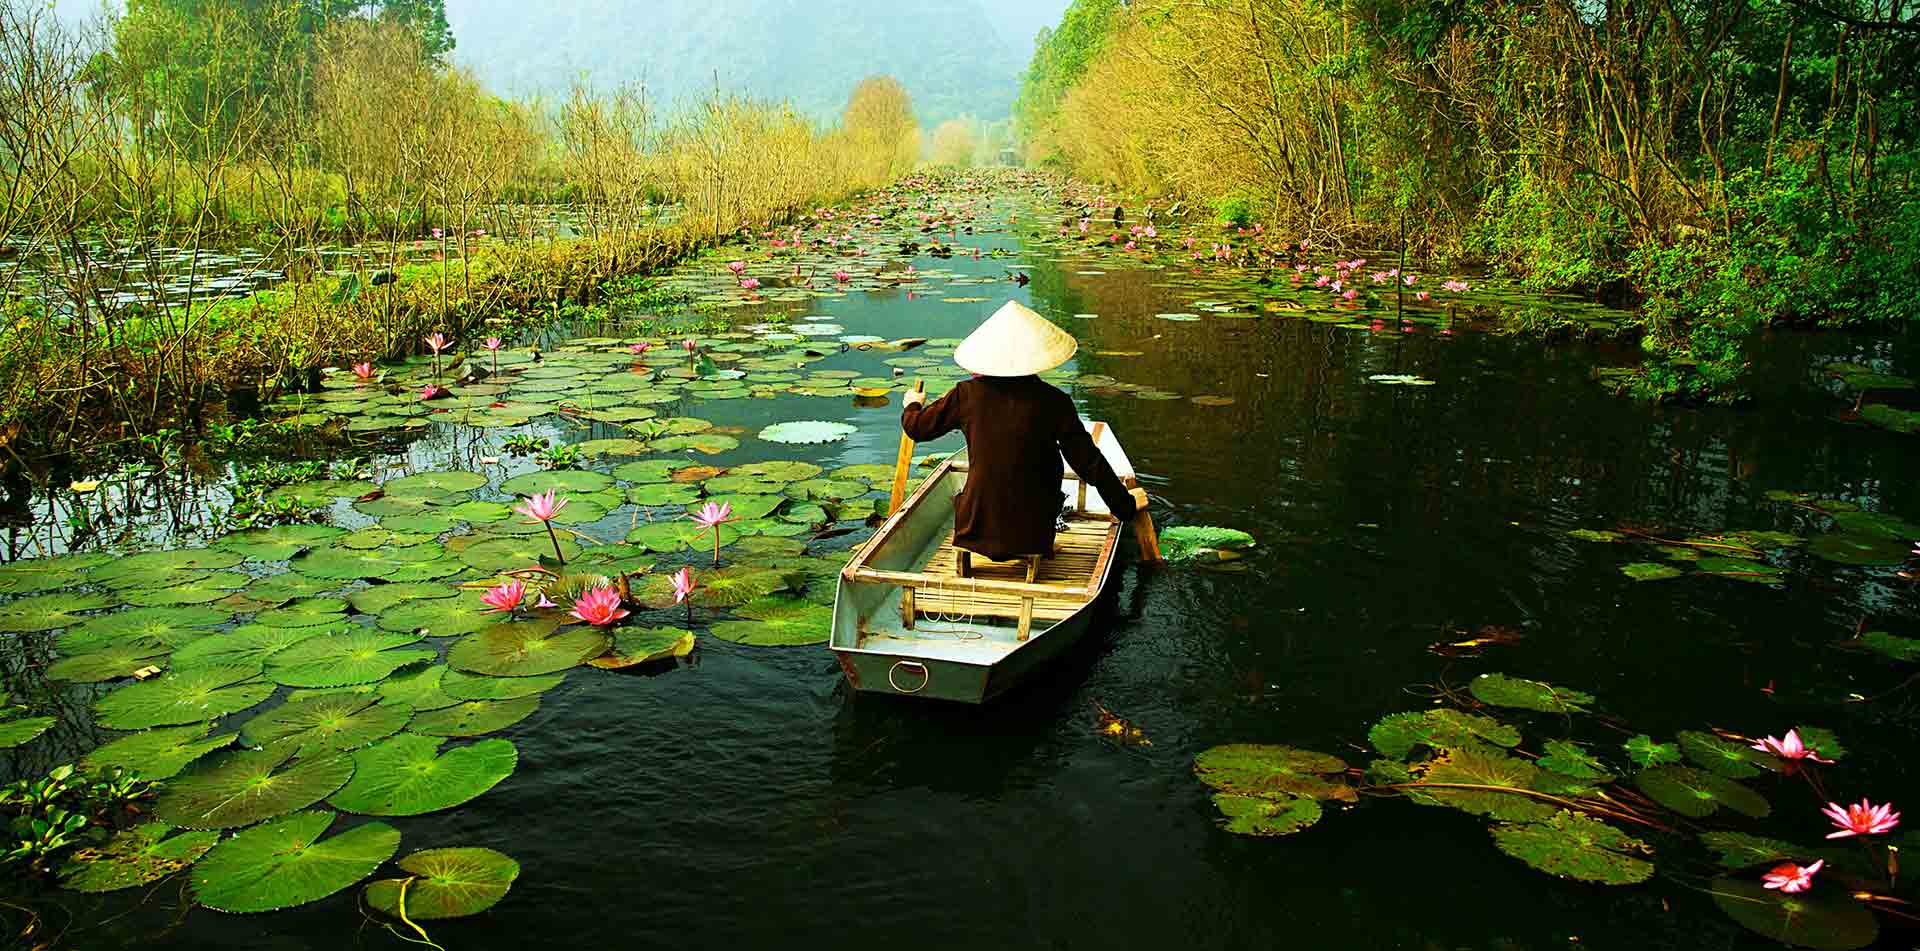 Asia Vietnam local in paddy hat rowing a boat down a river near the Mekong Delta - luxury vacation destinations